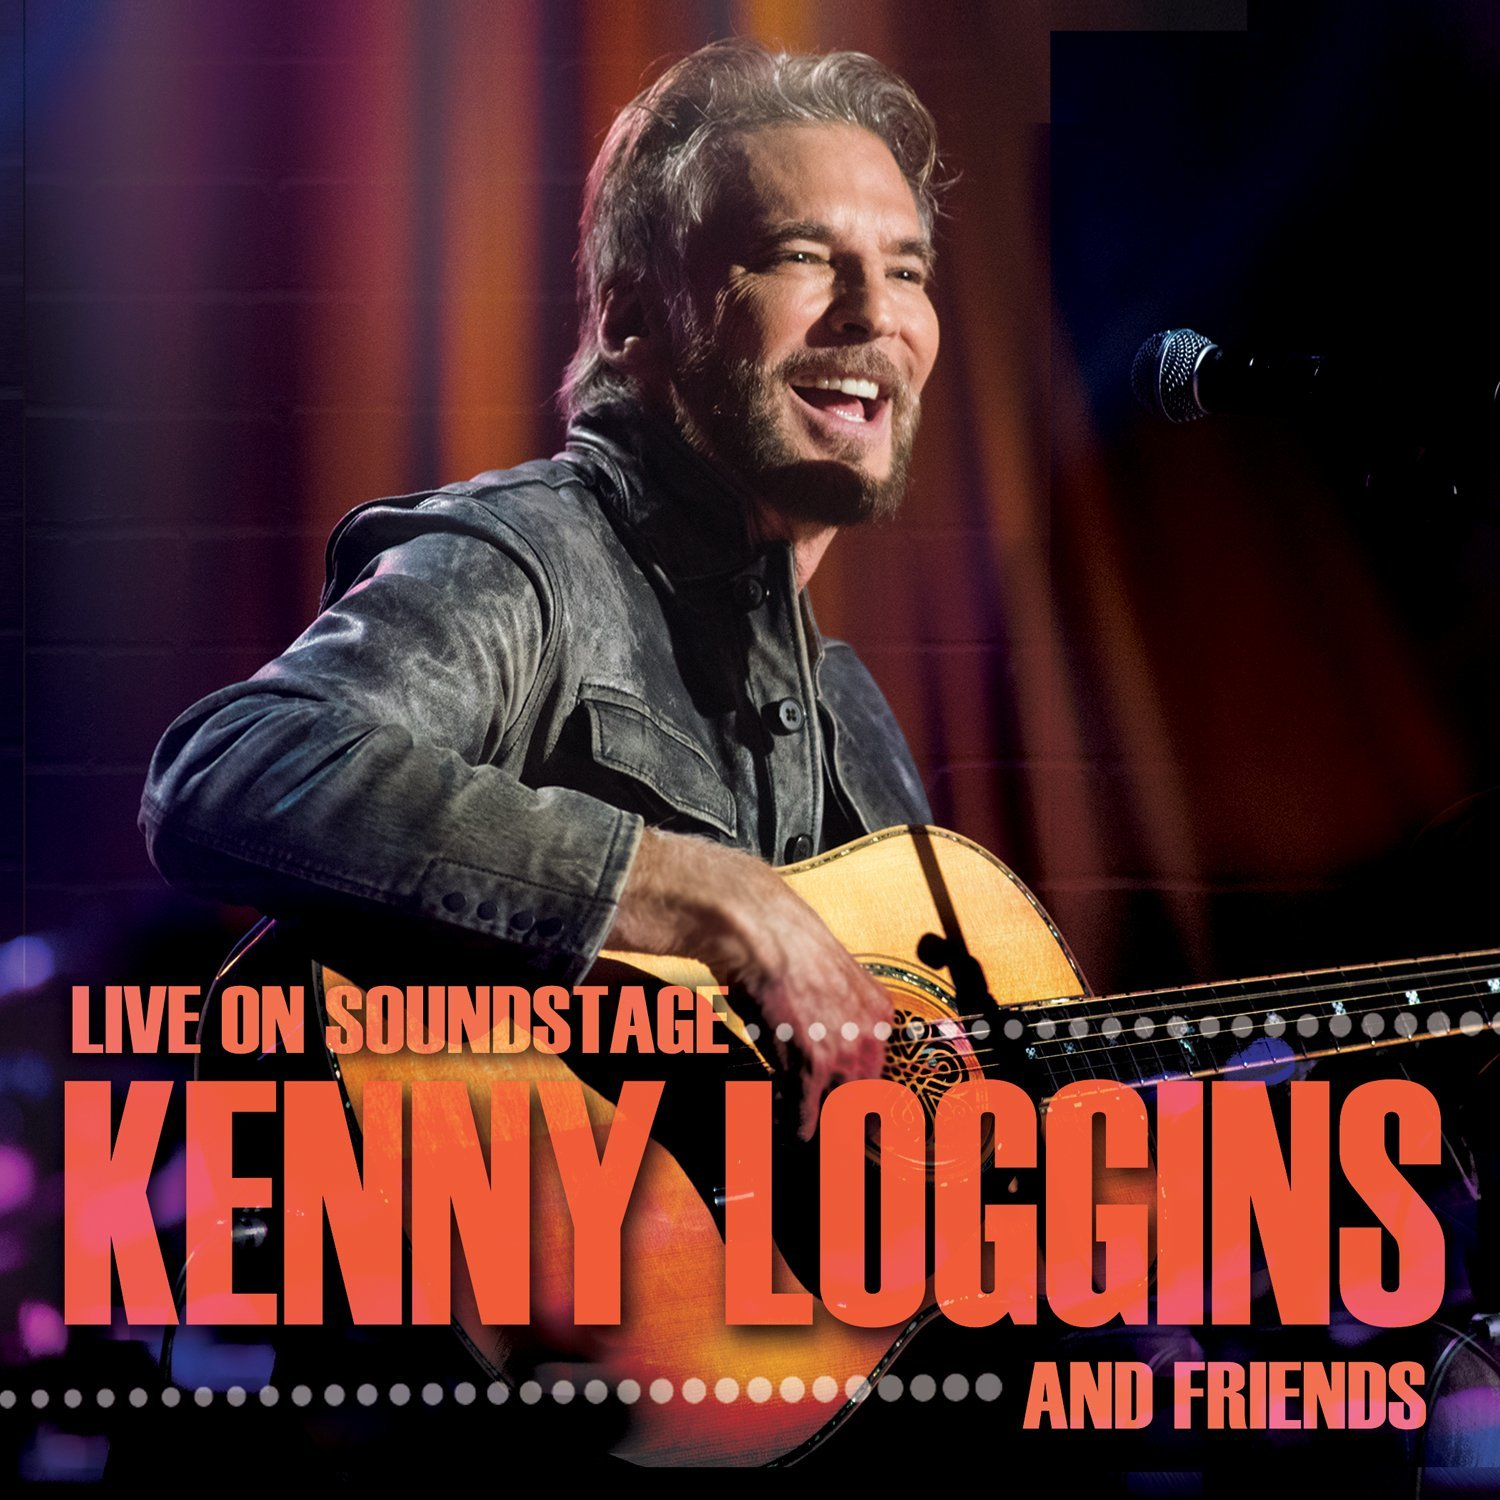 Kenny Loggins: Live on Soundstage Deluxe Blu-ray